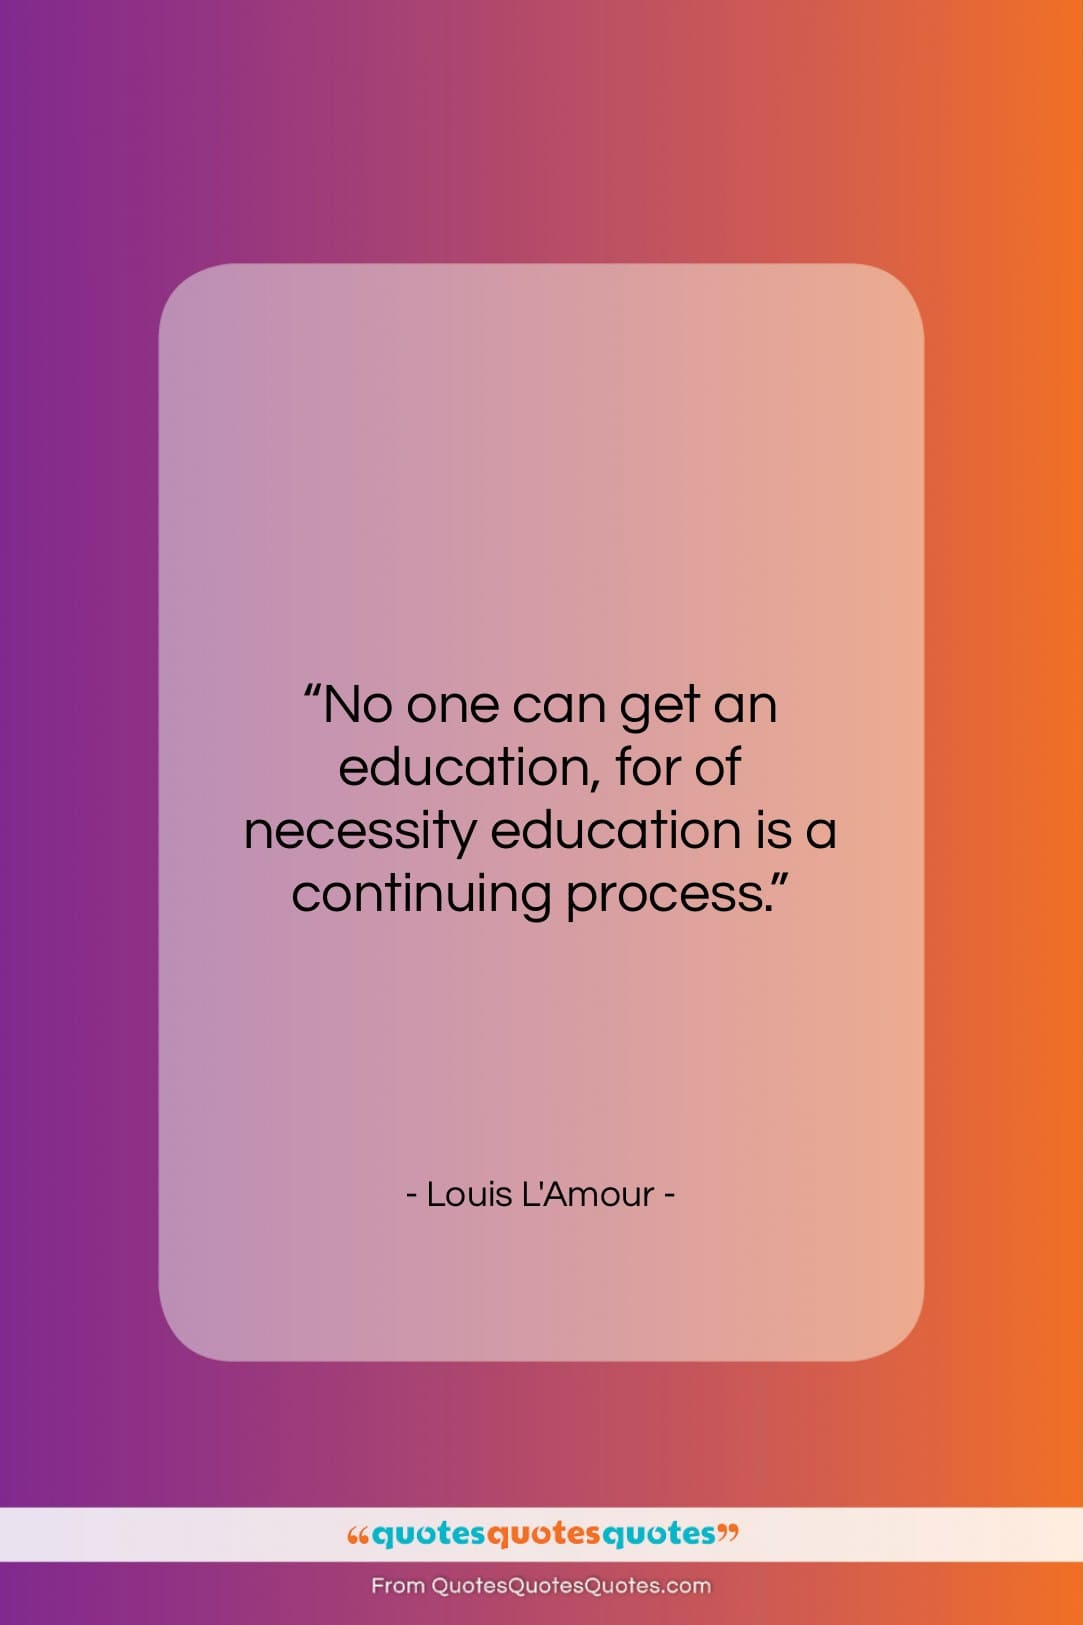 """Louis L'Amour quote: """"No one can get an education, for…""""- at QuotesQuotesQuotes.com"""